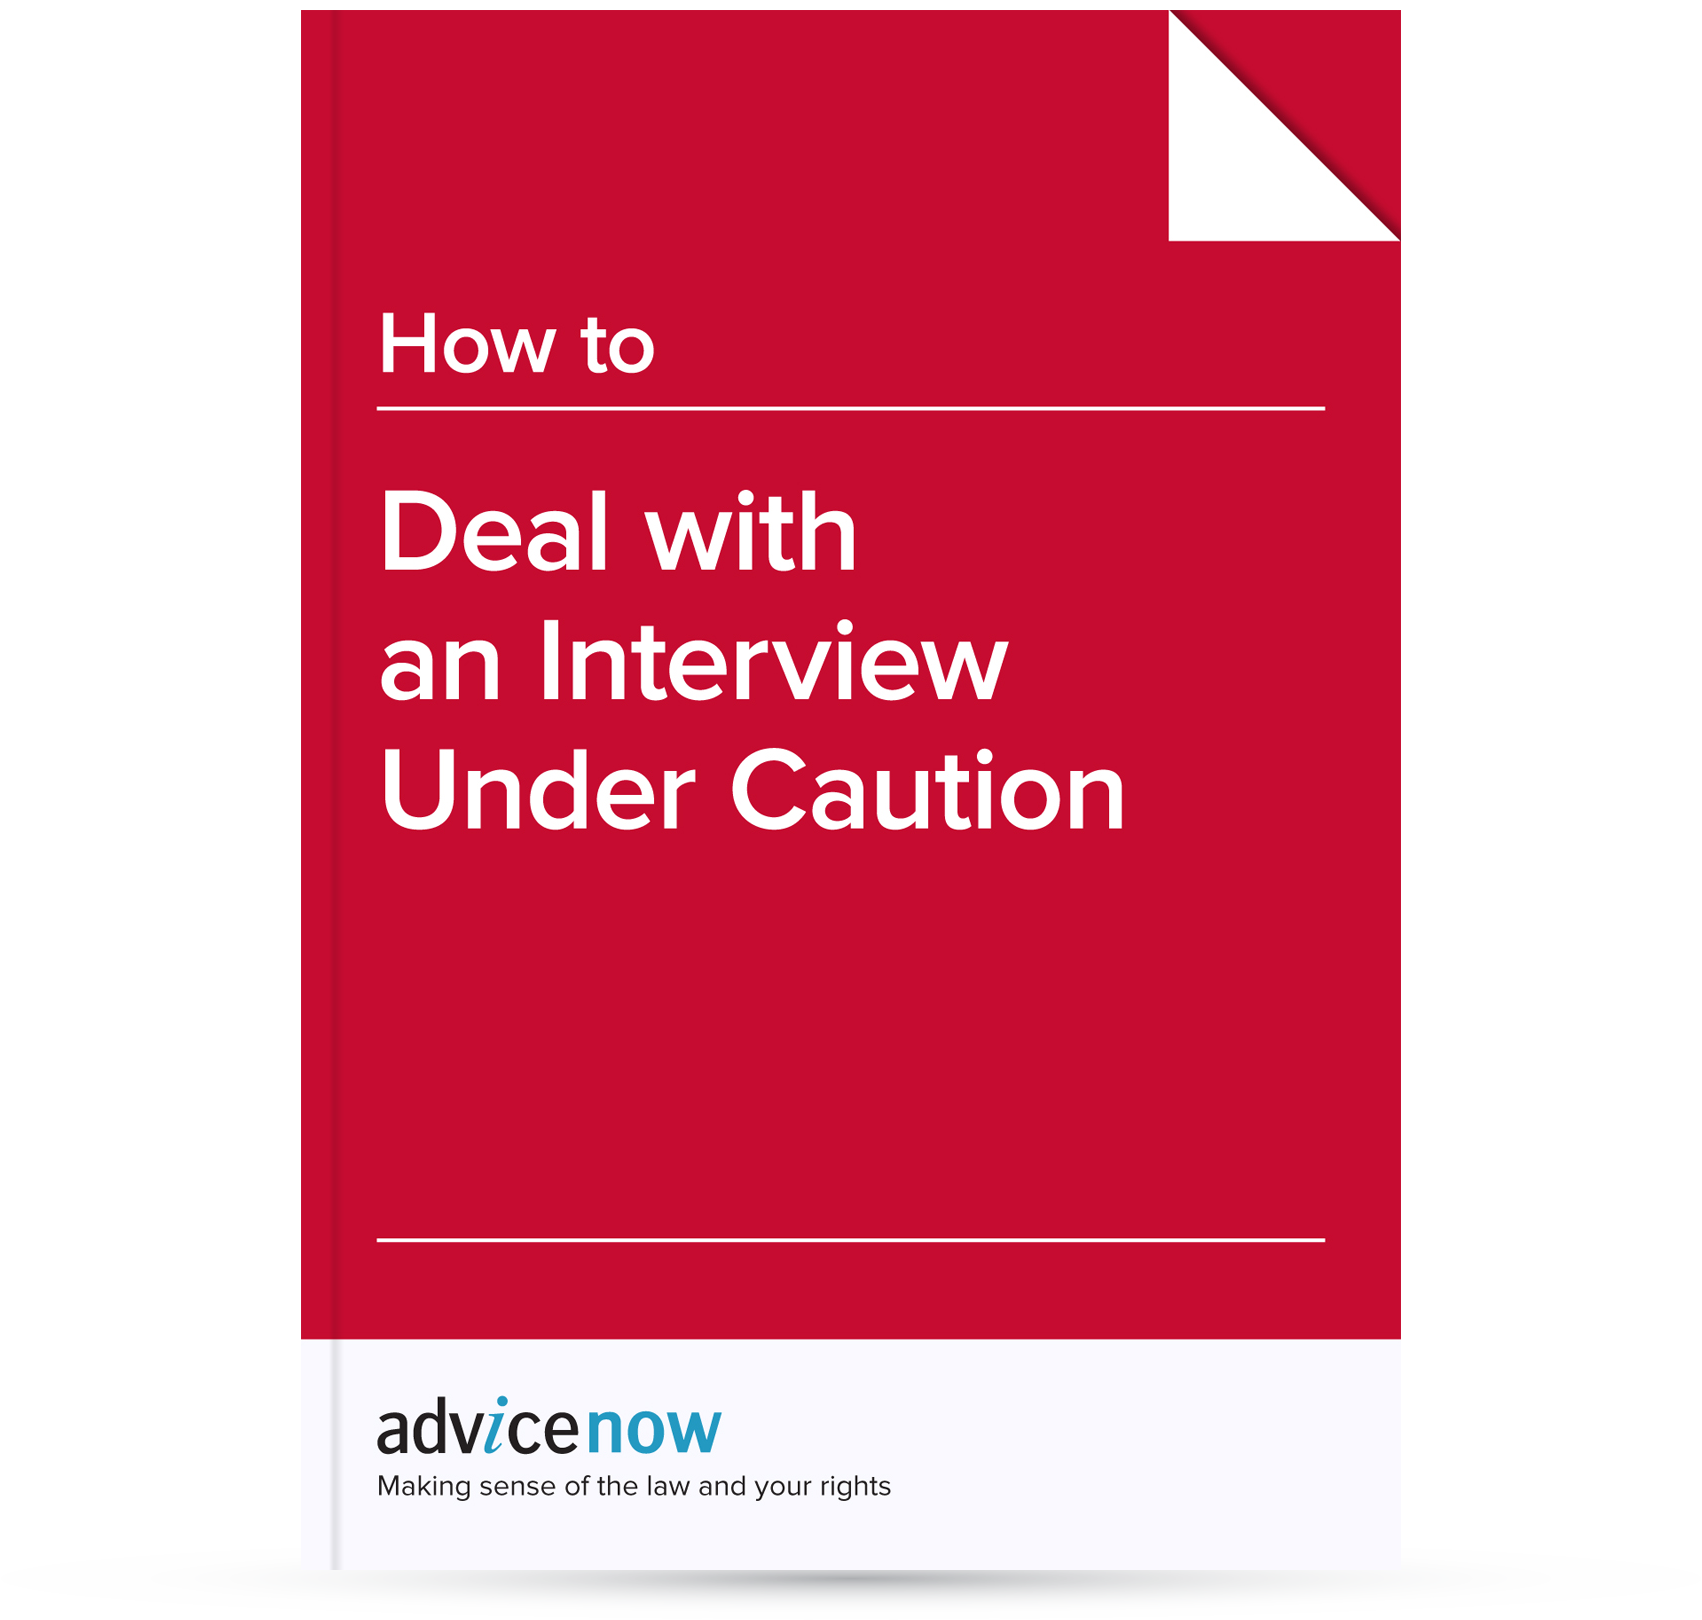 job seeking benefits advicenow how to deal an interview under caution